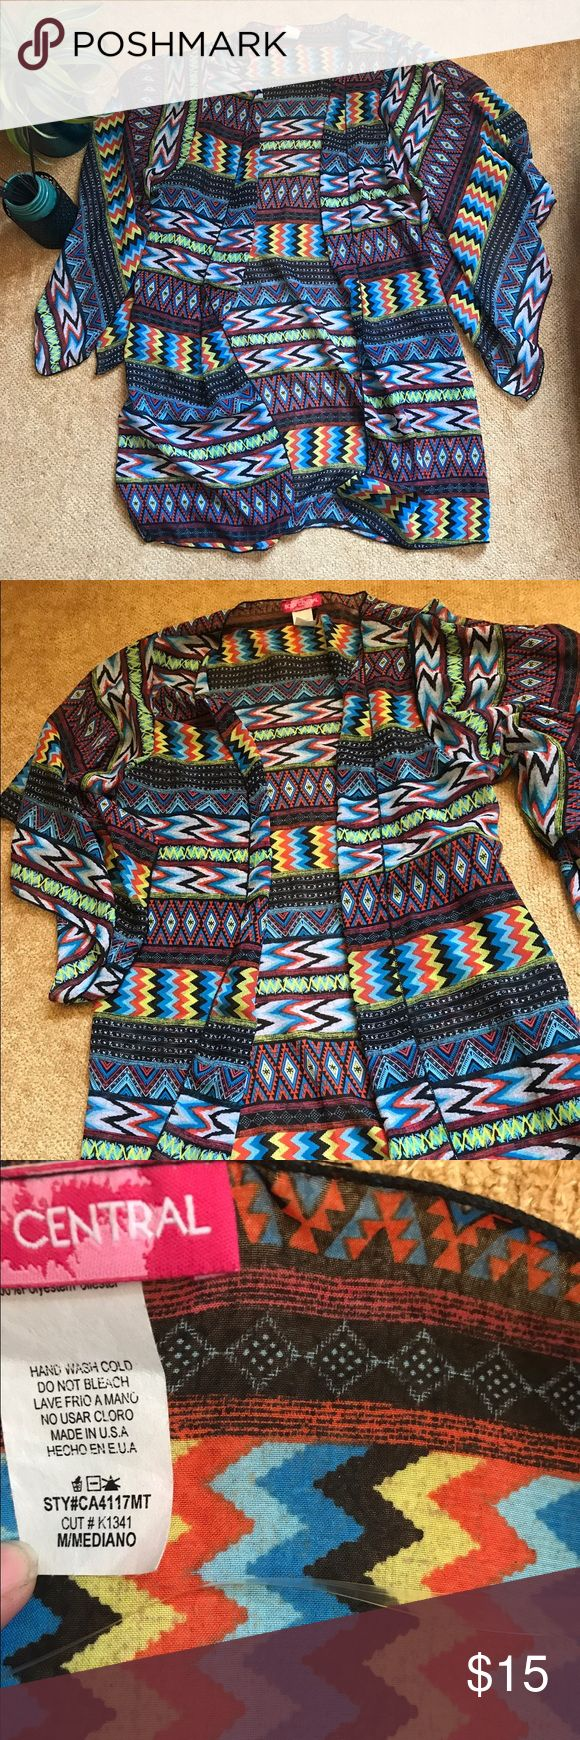 "Tribal Print Kimono Really fun tribal print kimono. Super lightweight 100% Polyester will help keep you cool and covered in the sun! Size medium. I got this from another Posher and while I love it a lot it is longer than I had imagined! 33.5"" top to bottom. I'm 5'9.5 and it hits where my fingers end with my arms straight down! I know there's someone out there that will love it!! Has really cute flutter sleeve design. Really flattering and colorful! Perfect beach cover up or outfit statement…"